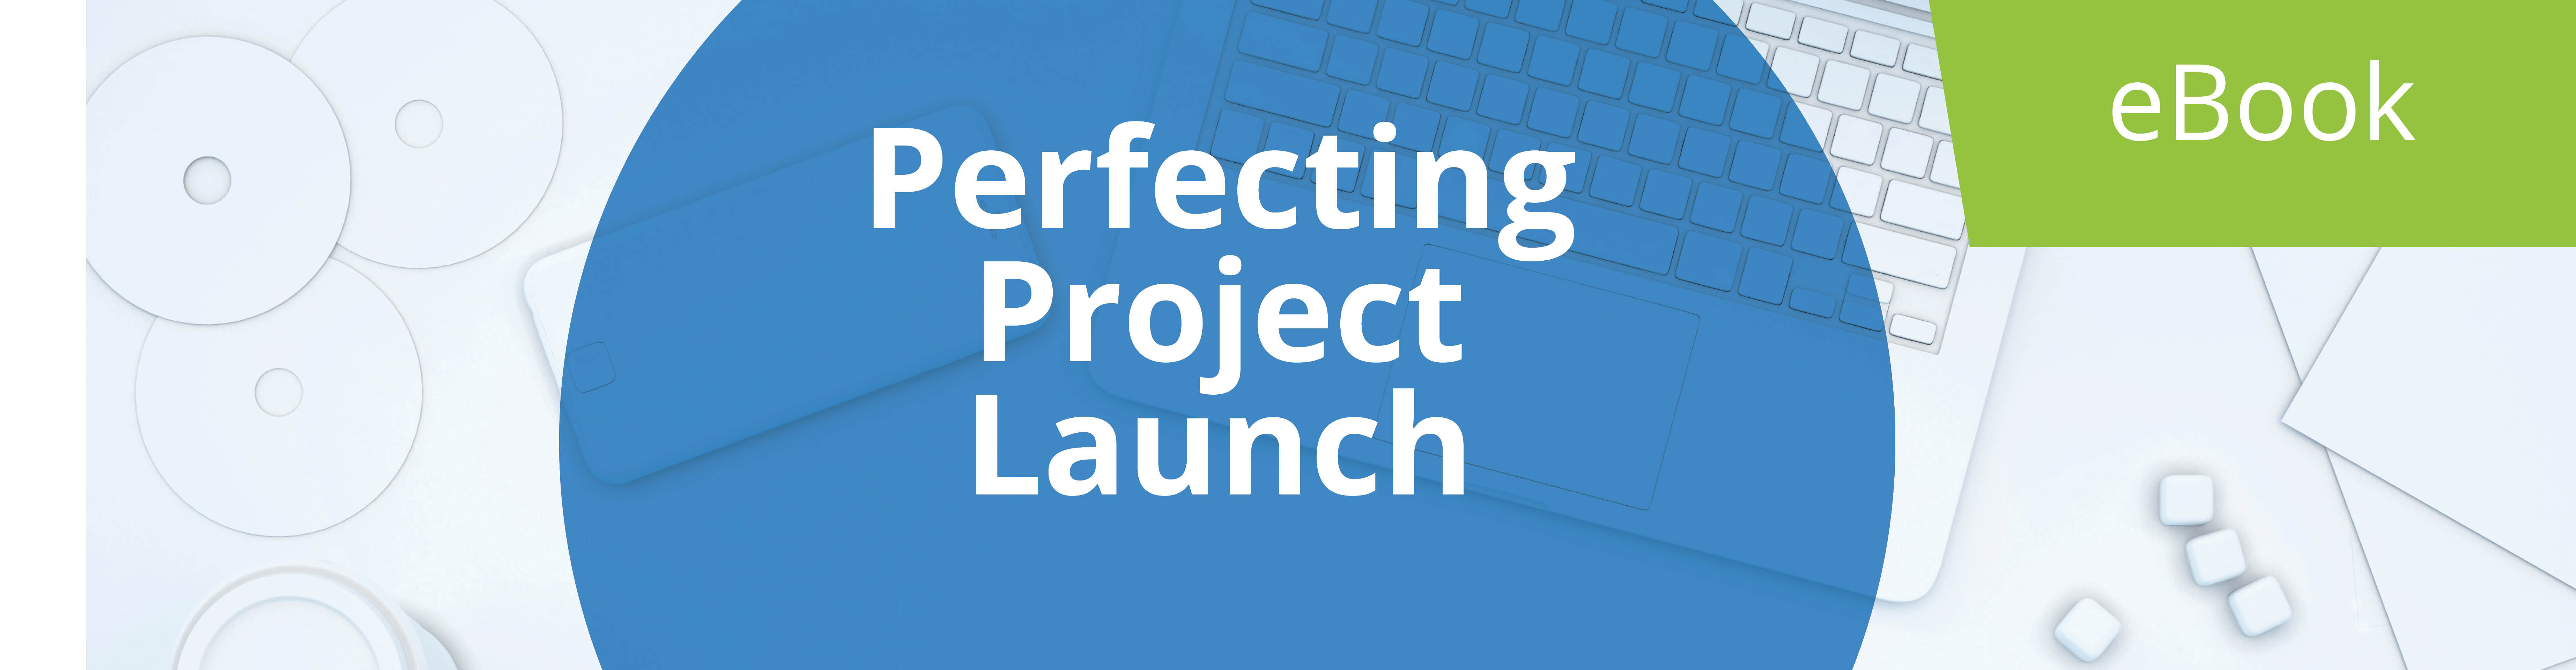 Project Launch eBook